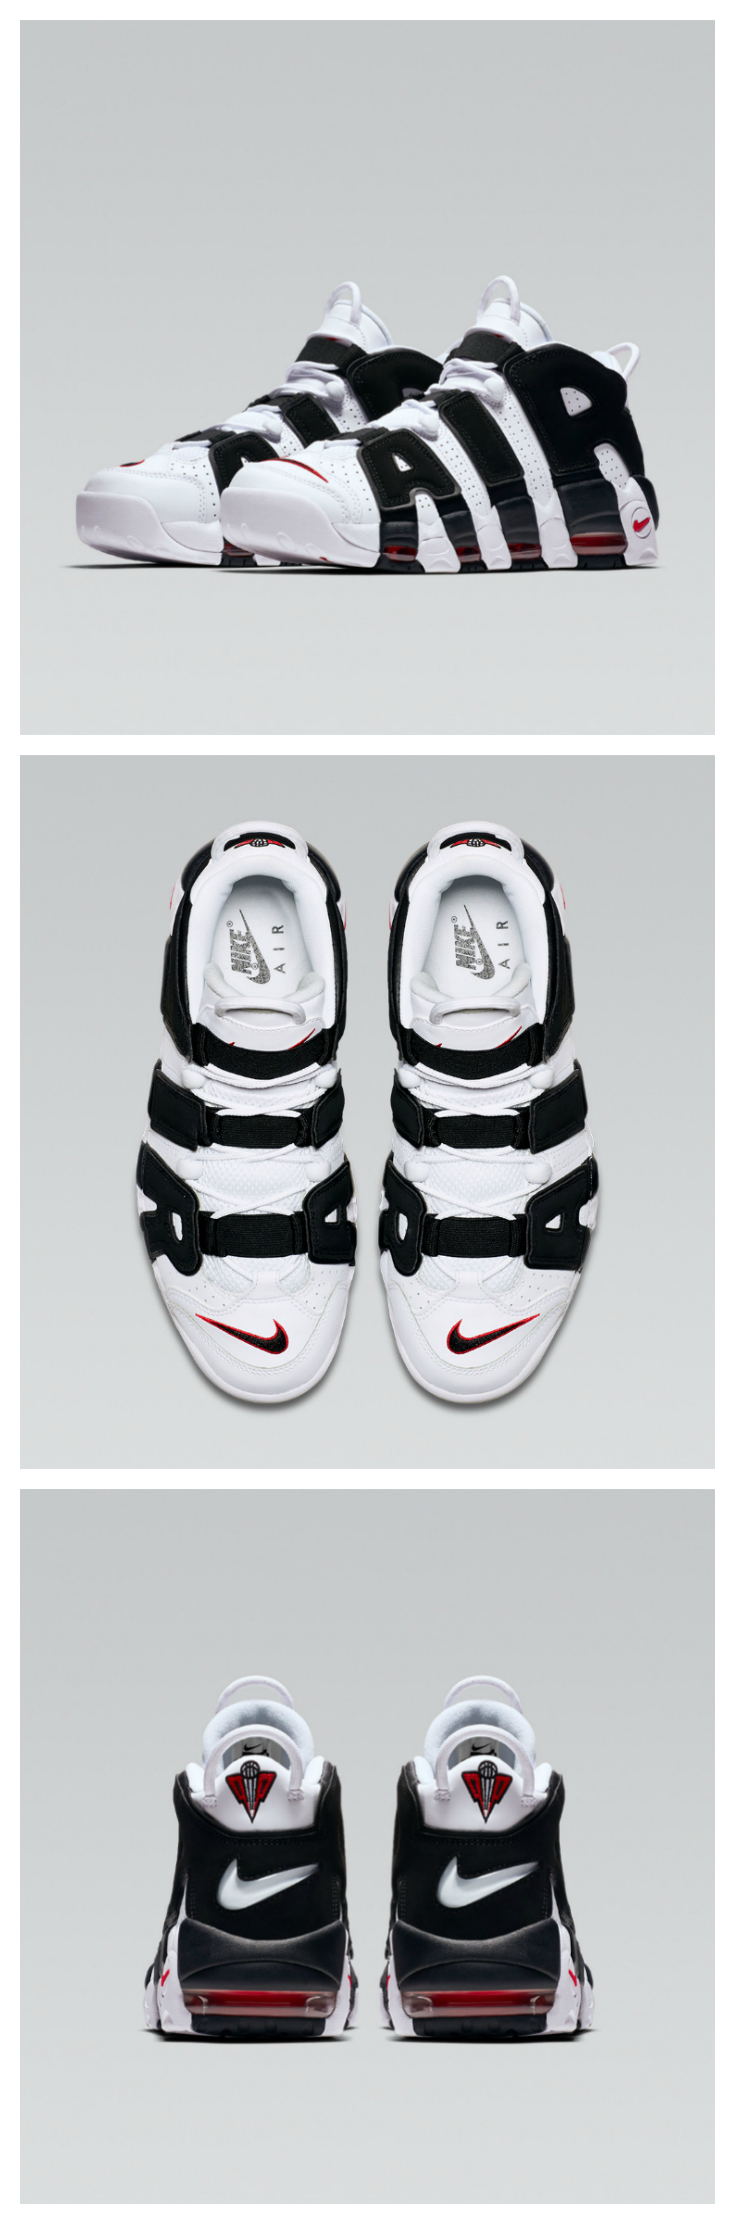 5e353d93d1 ... its time for some fresh air. the nike air more uptempo is out